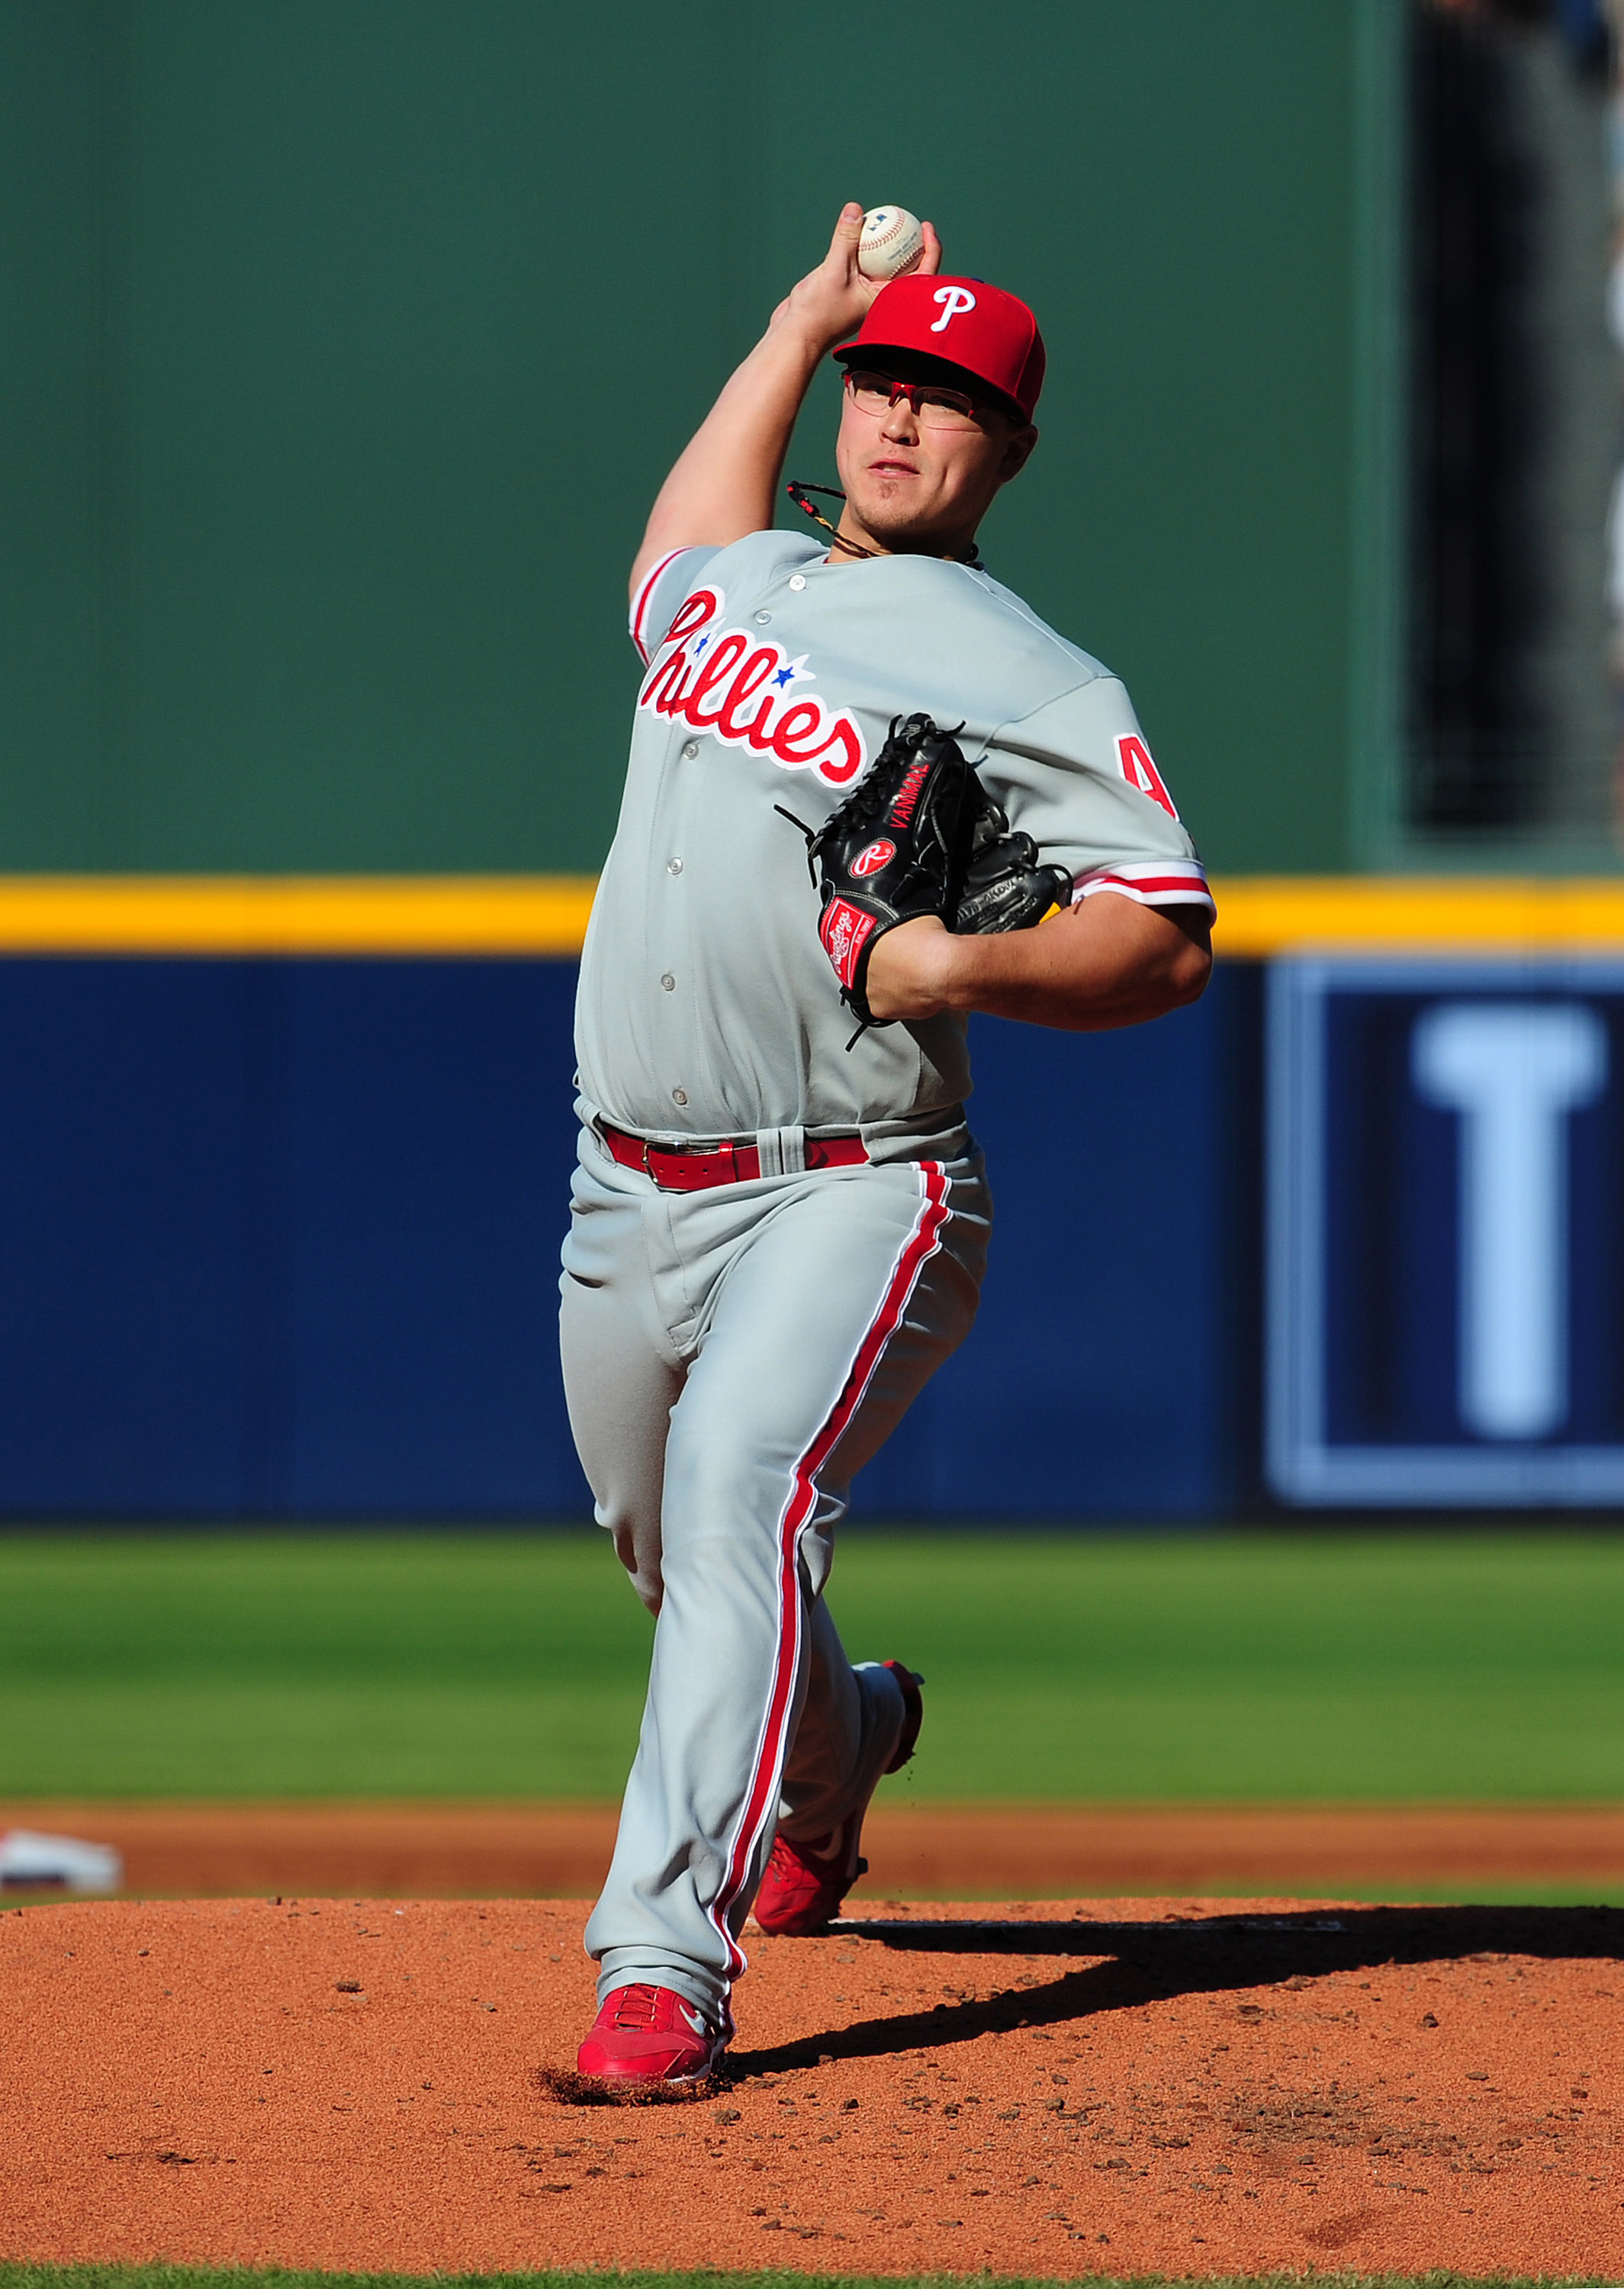 ATLANTA - OCTOBER 2: Vance Worley #49 of the Philadelphia Phillies pitches against the Atlanta Braves at Turner Field on October 2, 2010 in Atlanta, Georgia. (Photo by Scott Cunningham/Getty Images)